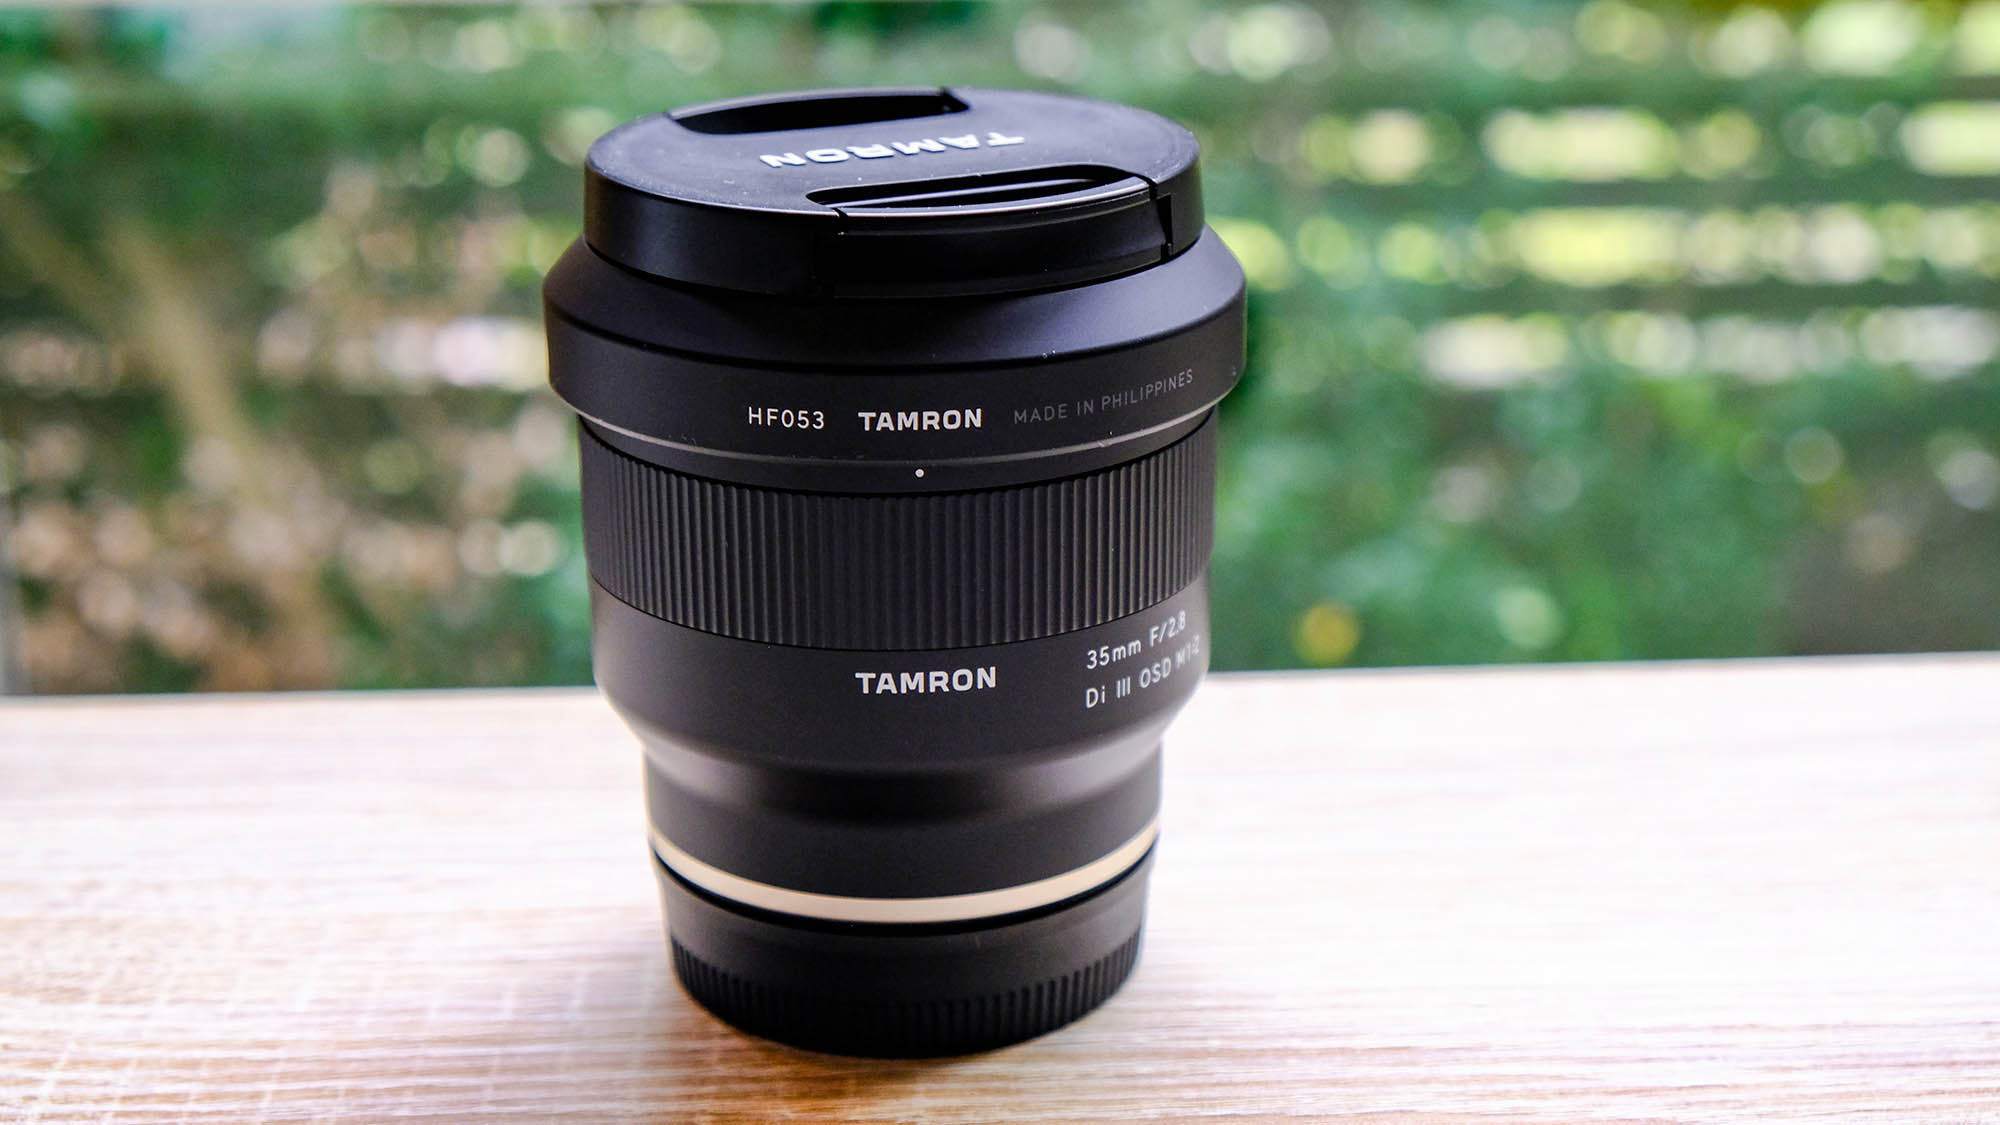 Tamron 35mm f/2.8 Lens for Sony Review